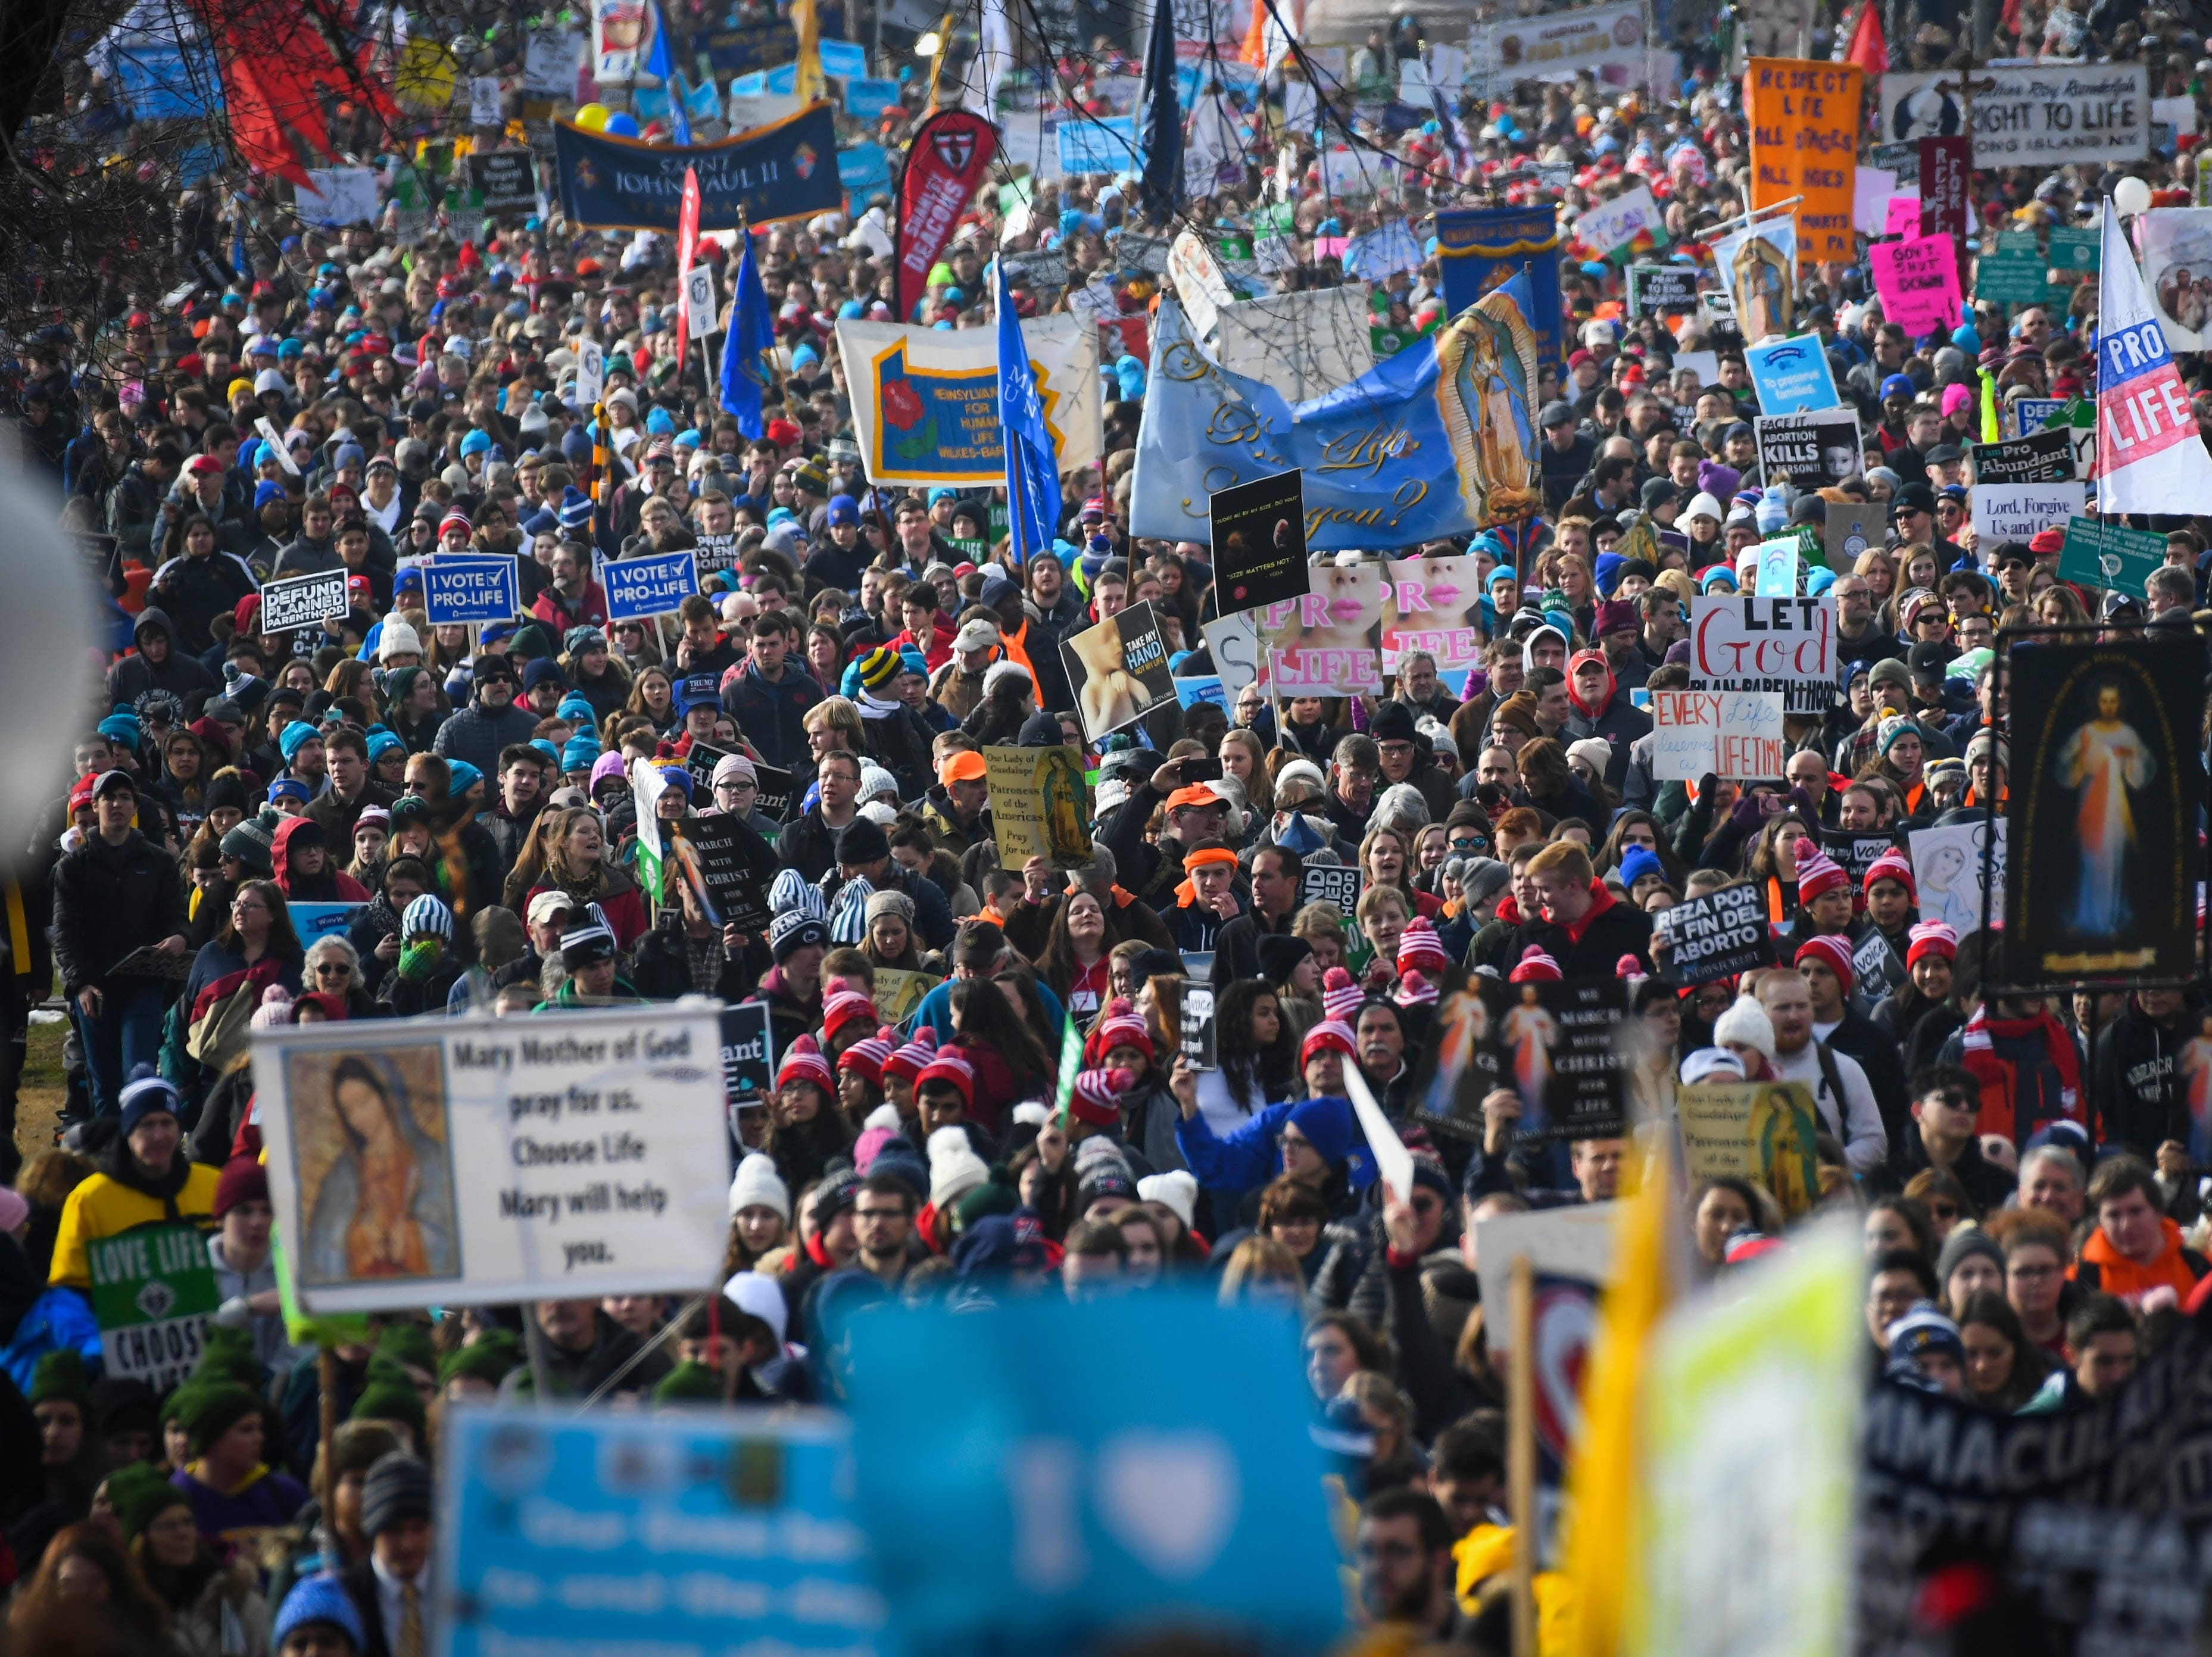 The annual rally protests the practice and legality of abortion.